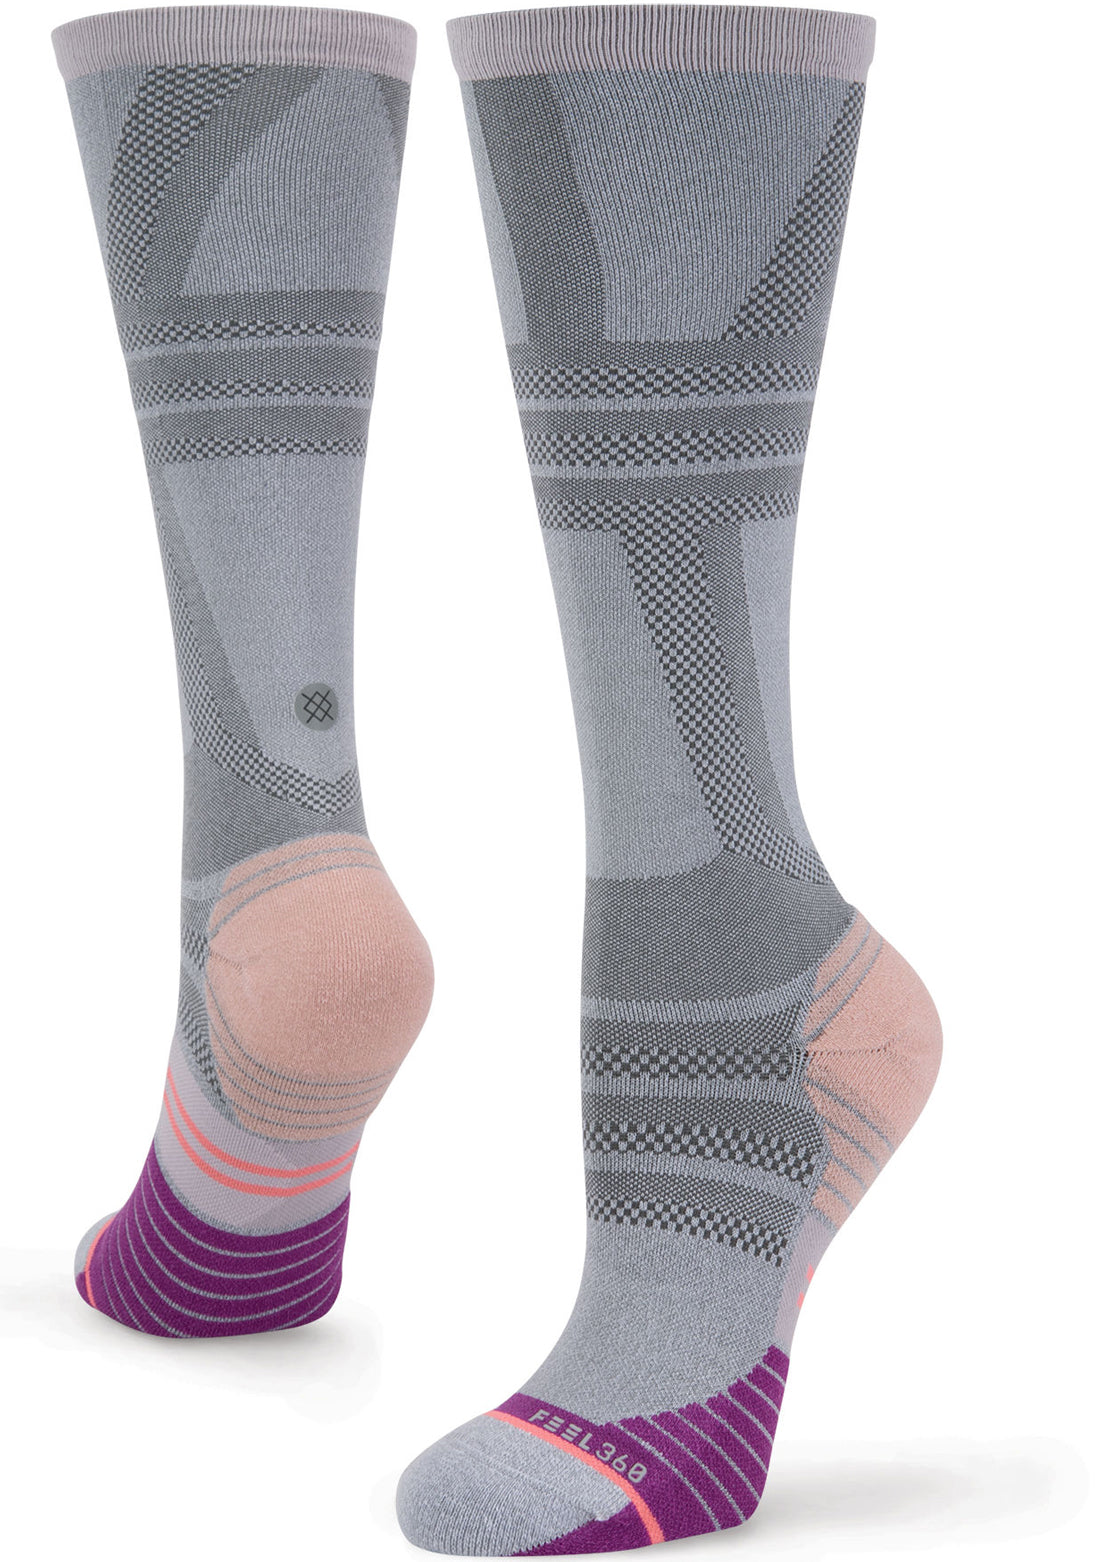 Stance Women's Long Distance OTC Running Socks Grey